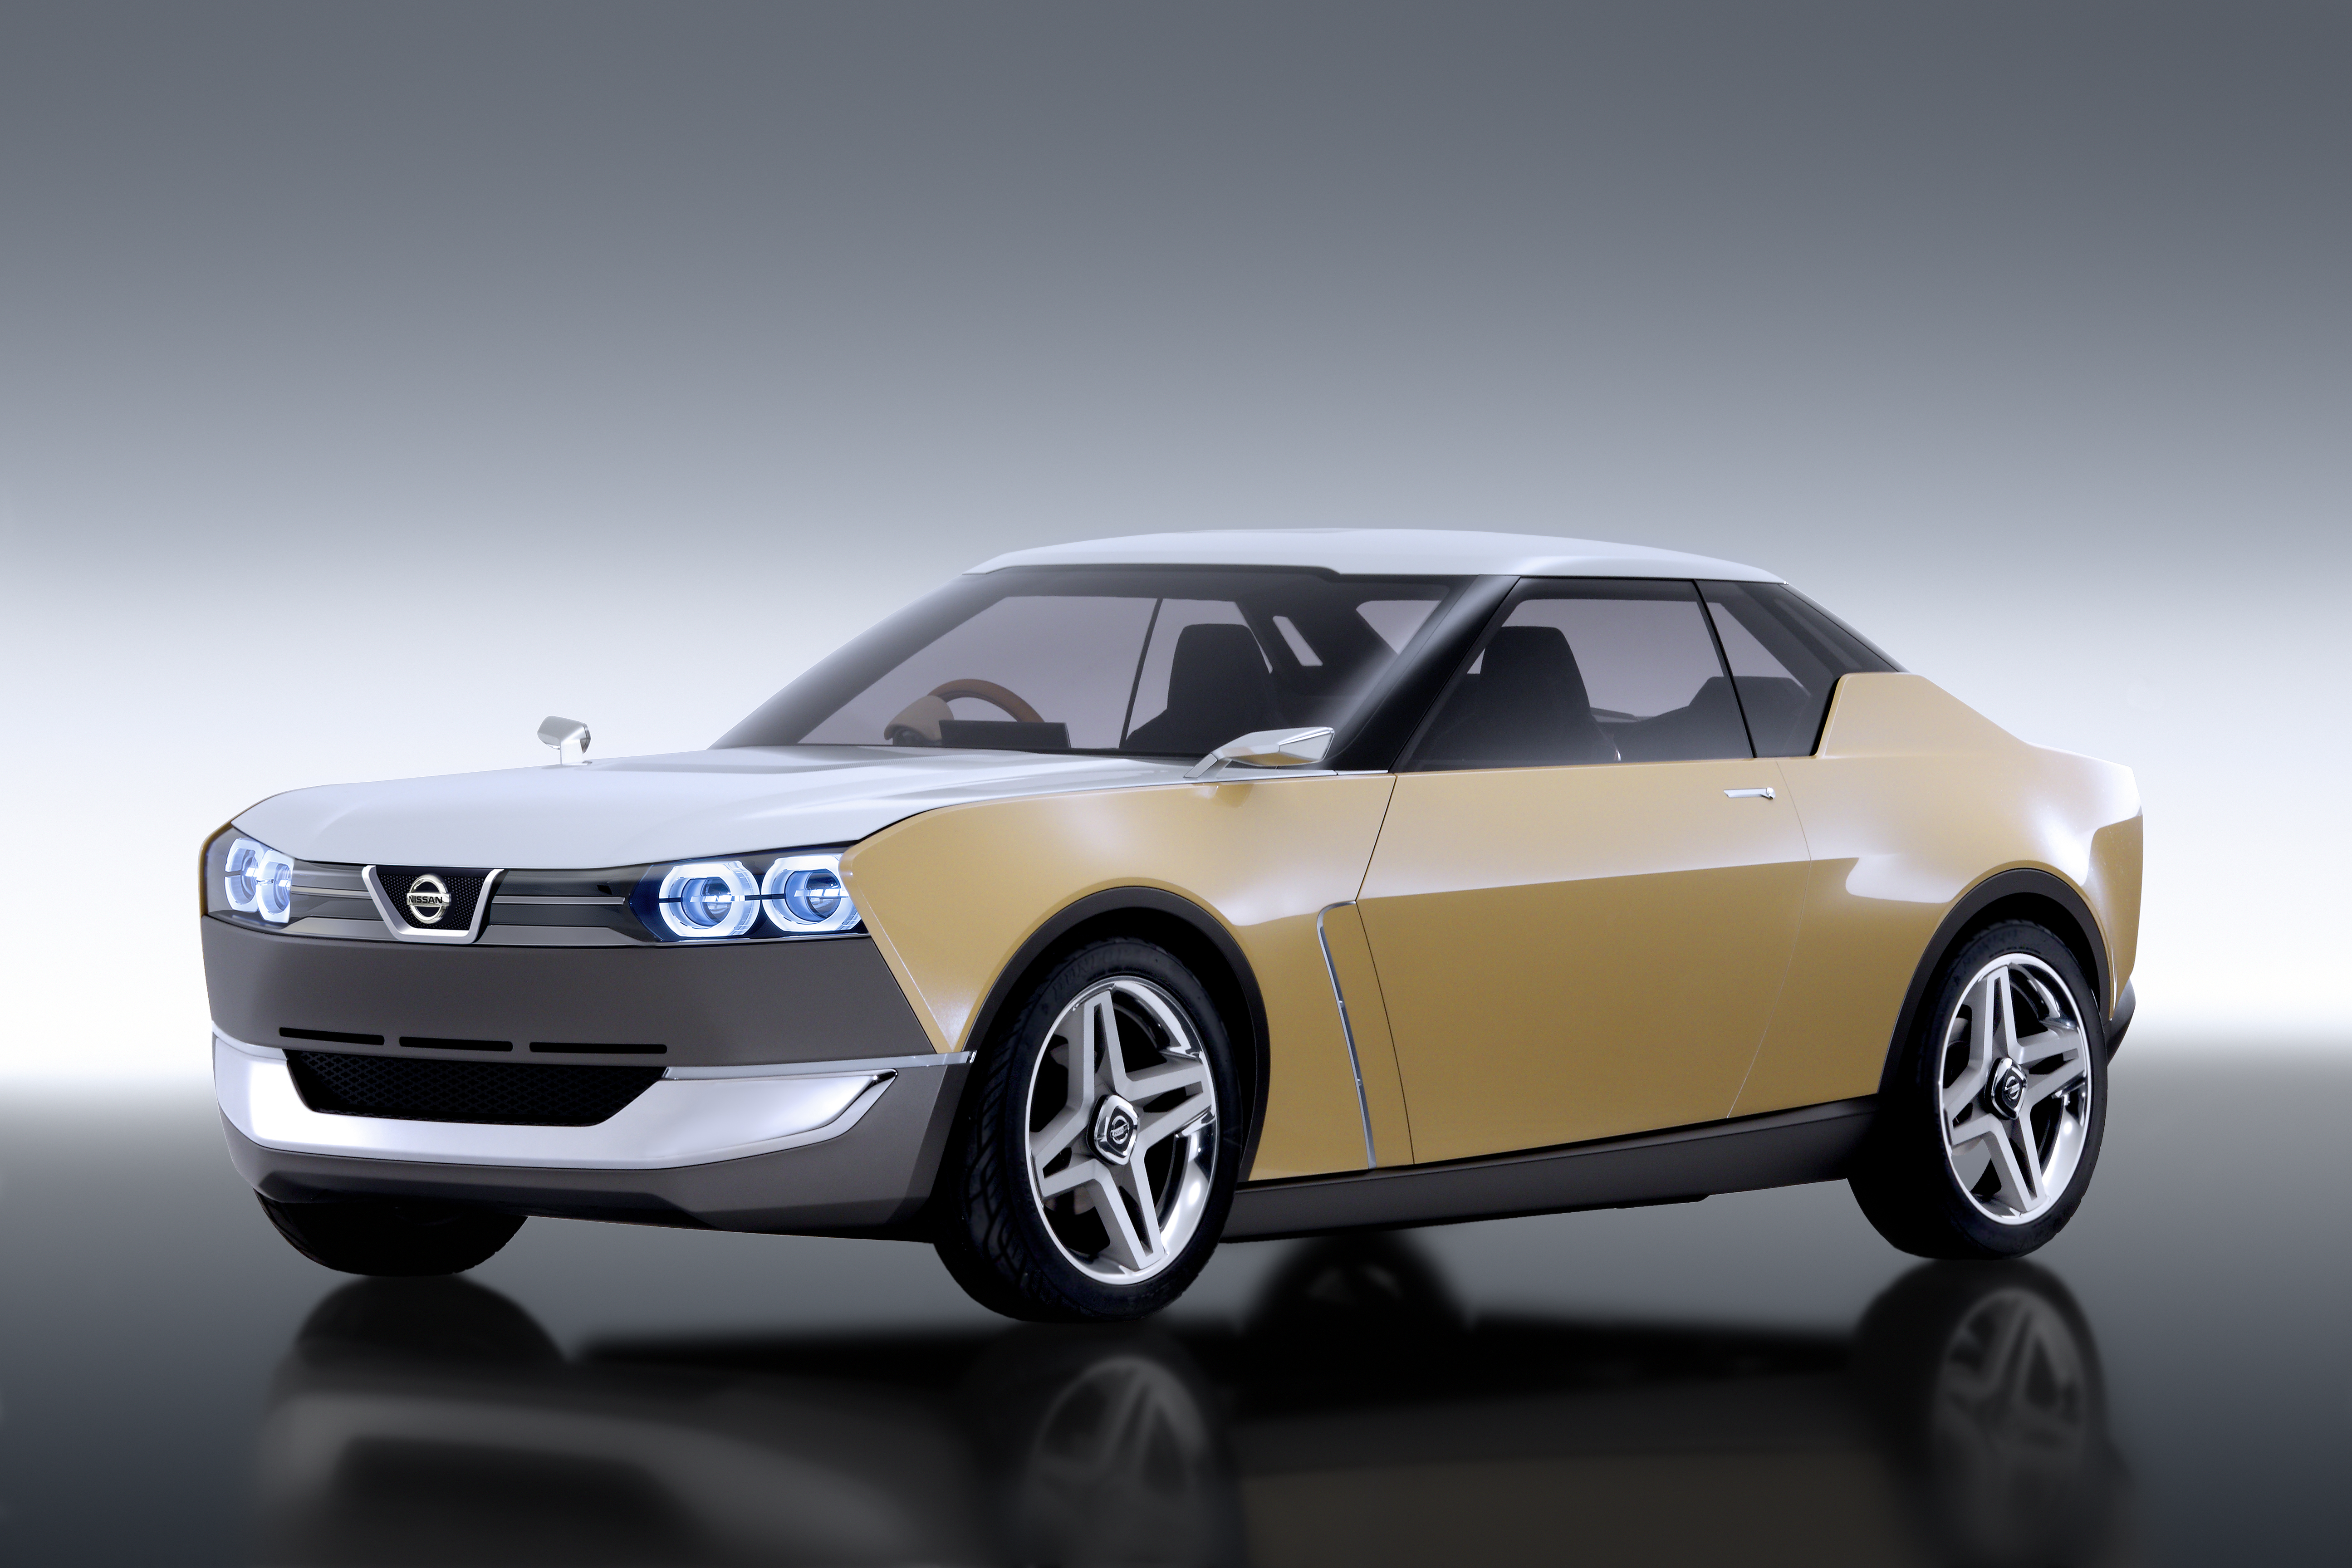 Nissan Idx Is Super Dead But Parts May Live On In Fwd